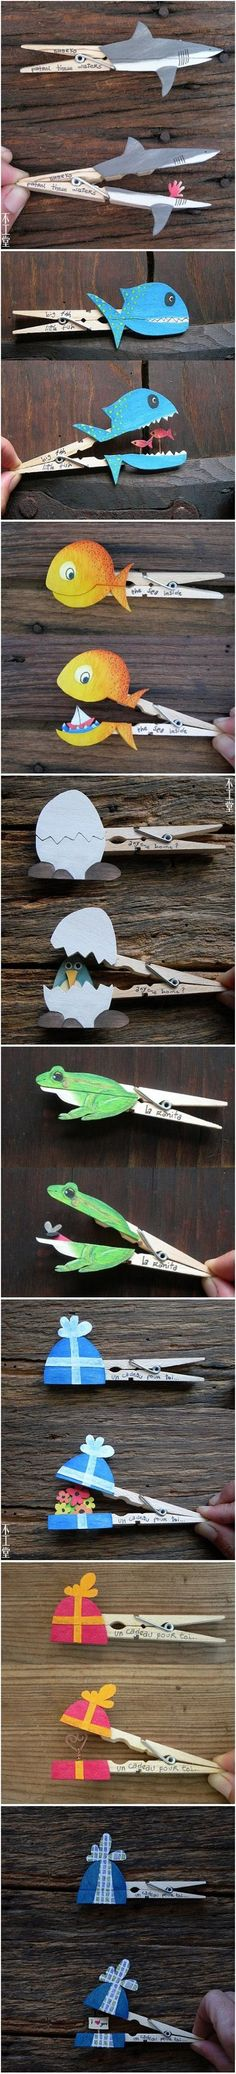 Funny - Fun With Clothespins